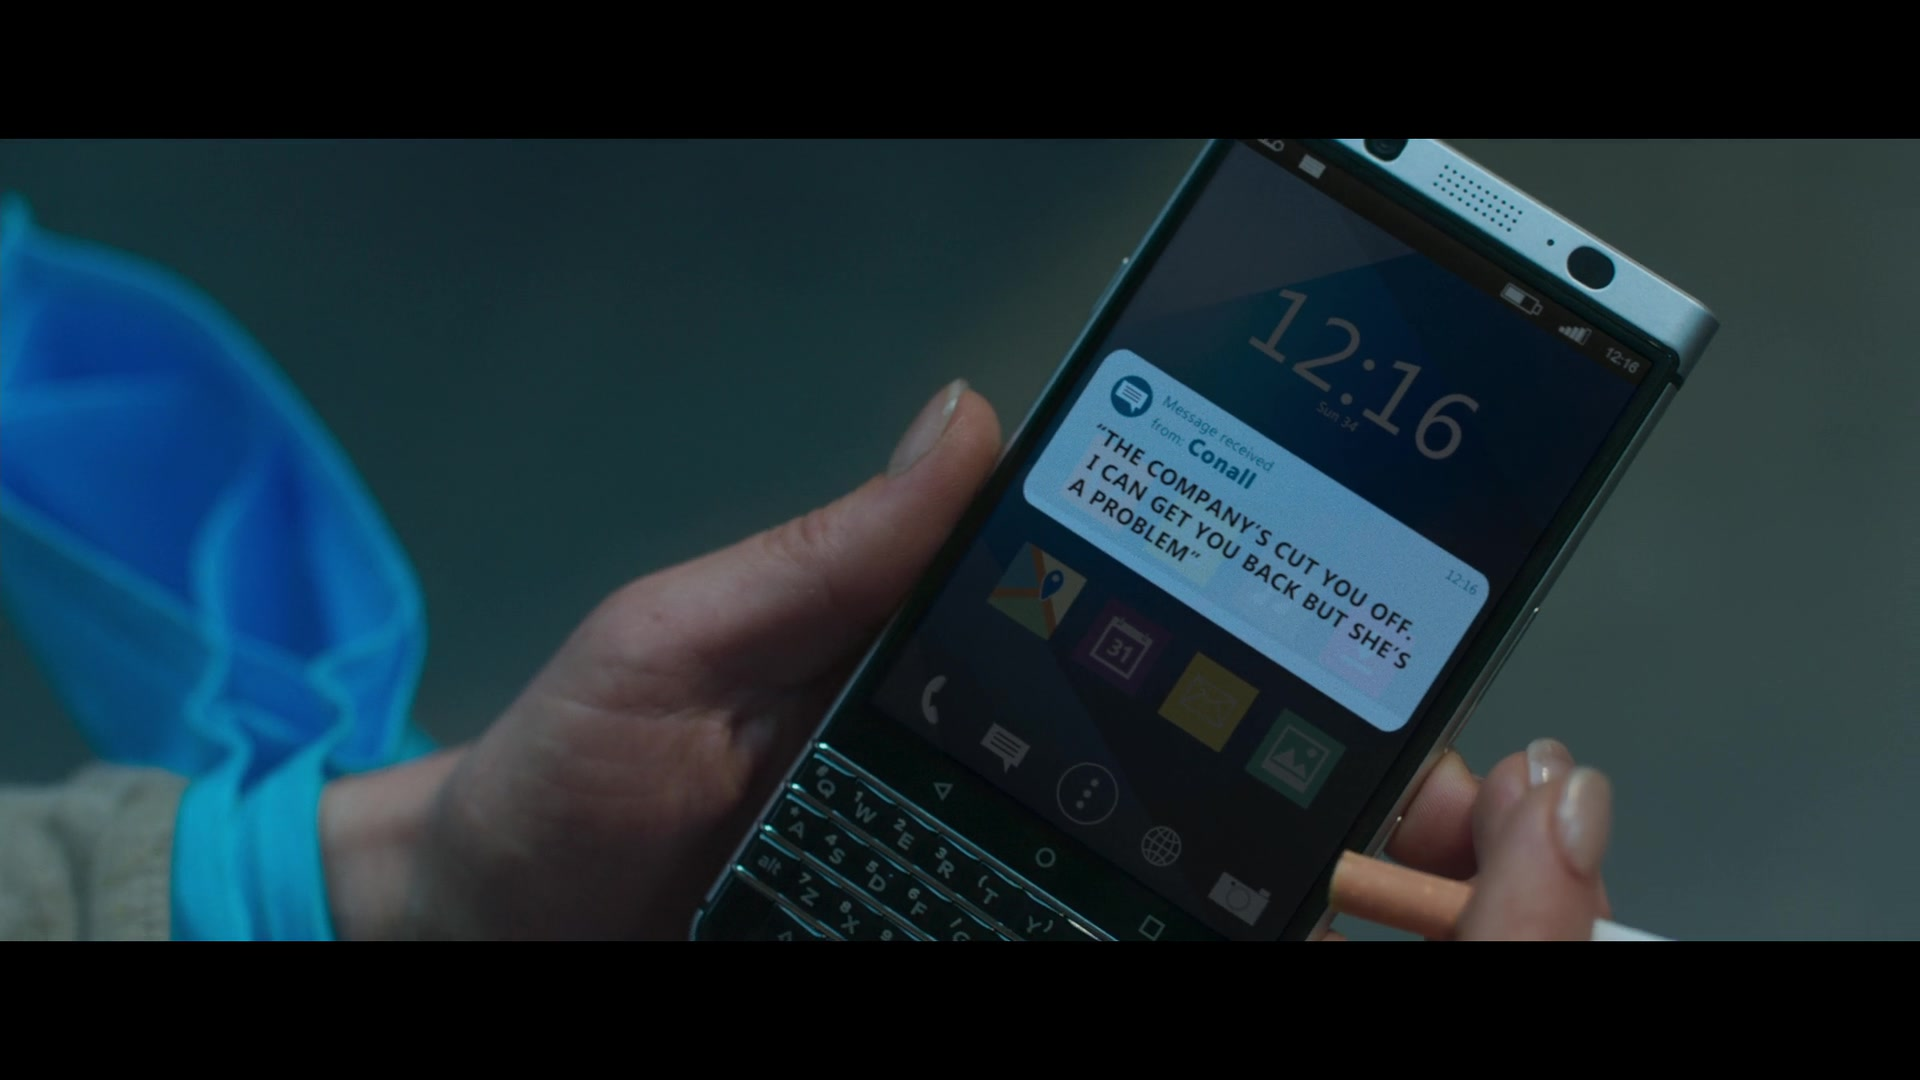 BlackBerry KEYone Secure QWERTY Android Smartphone Used by Noomi